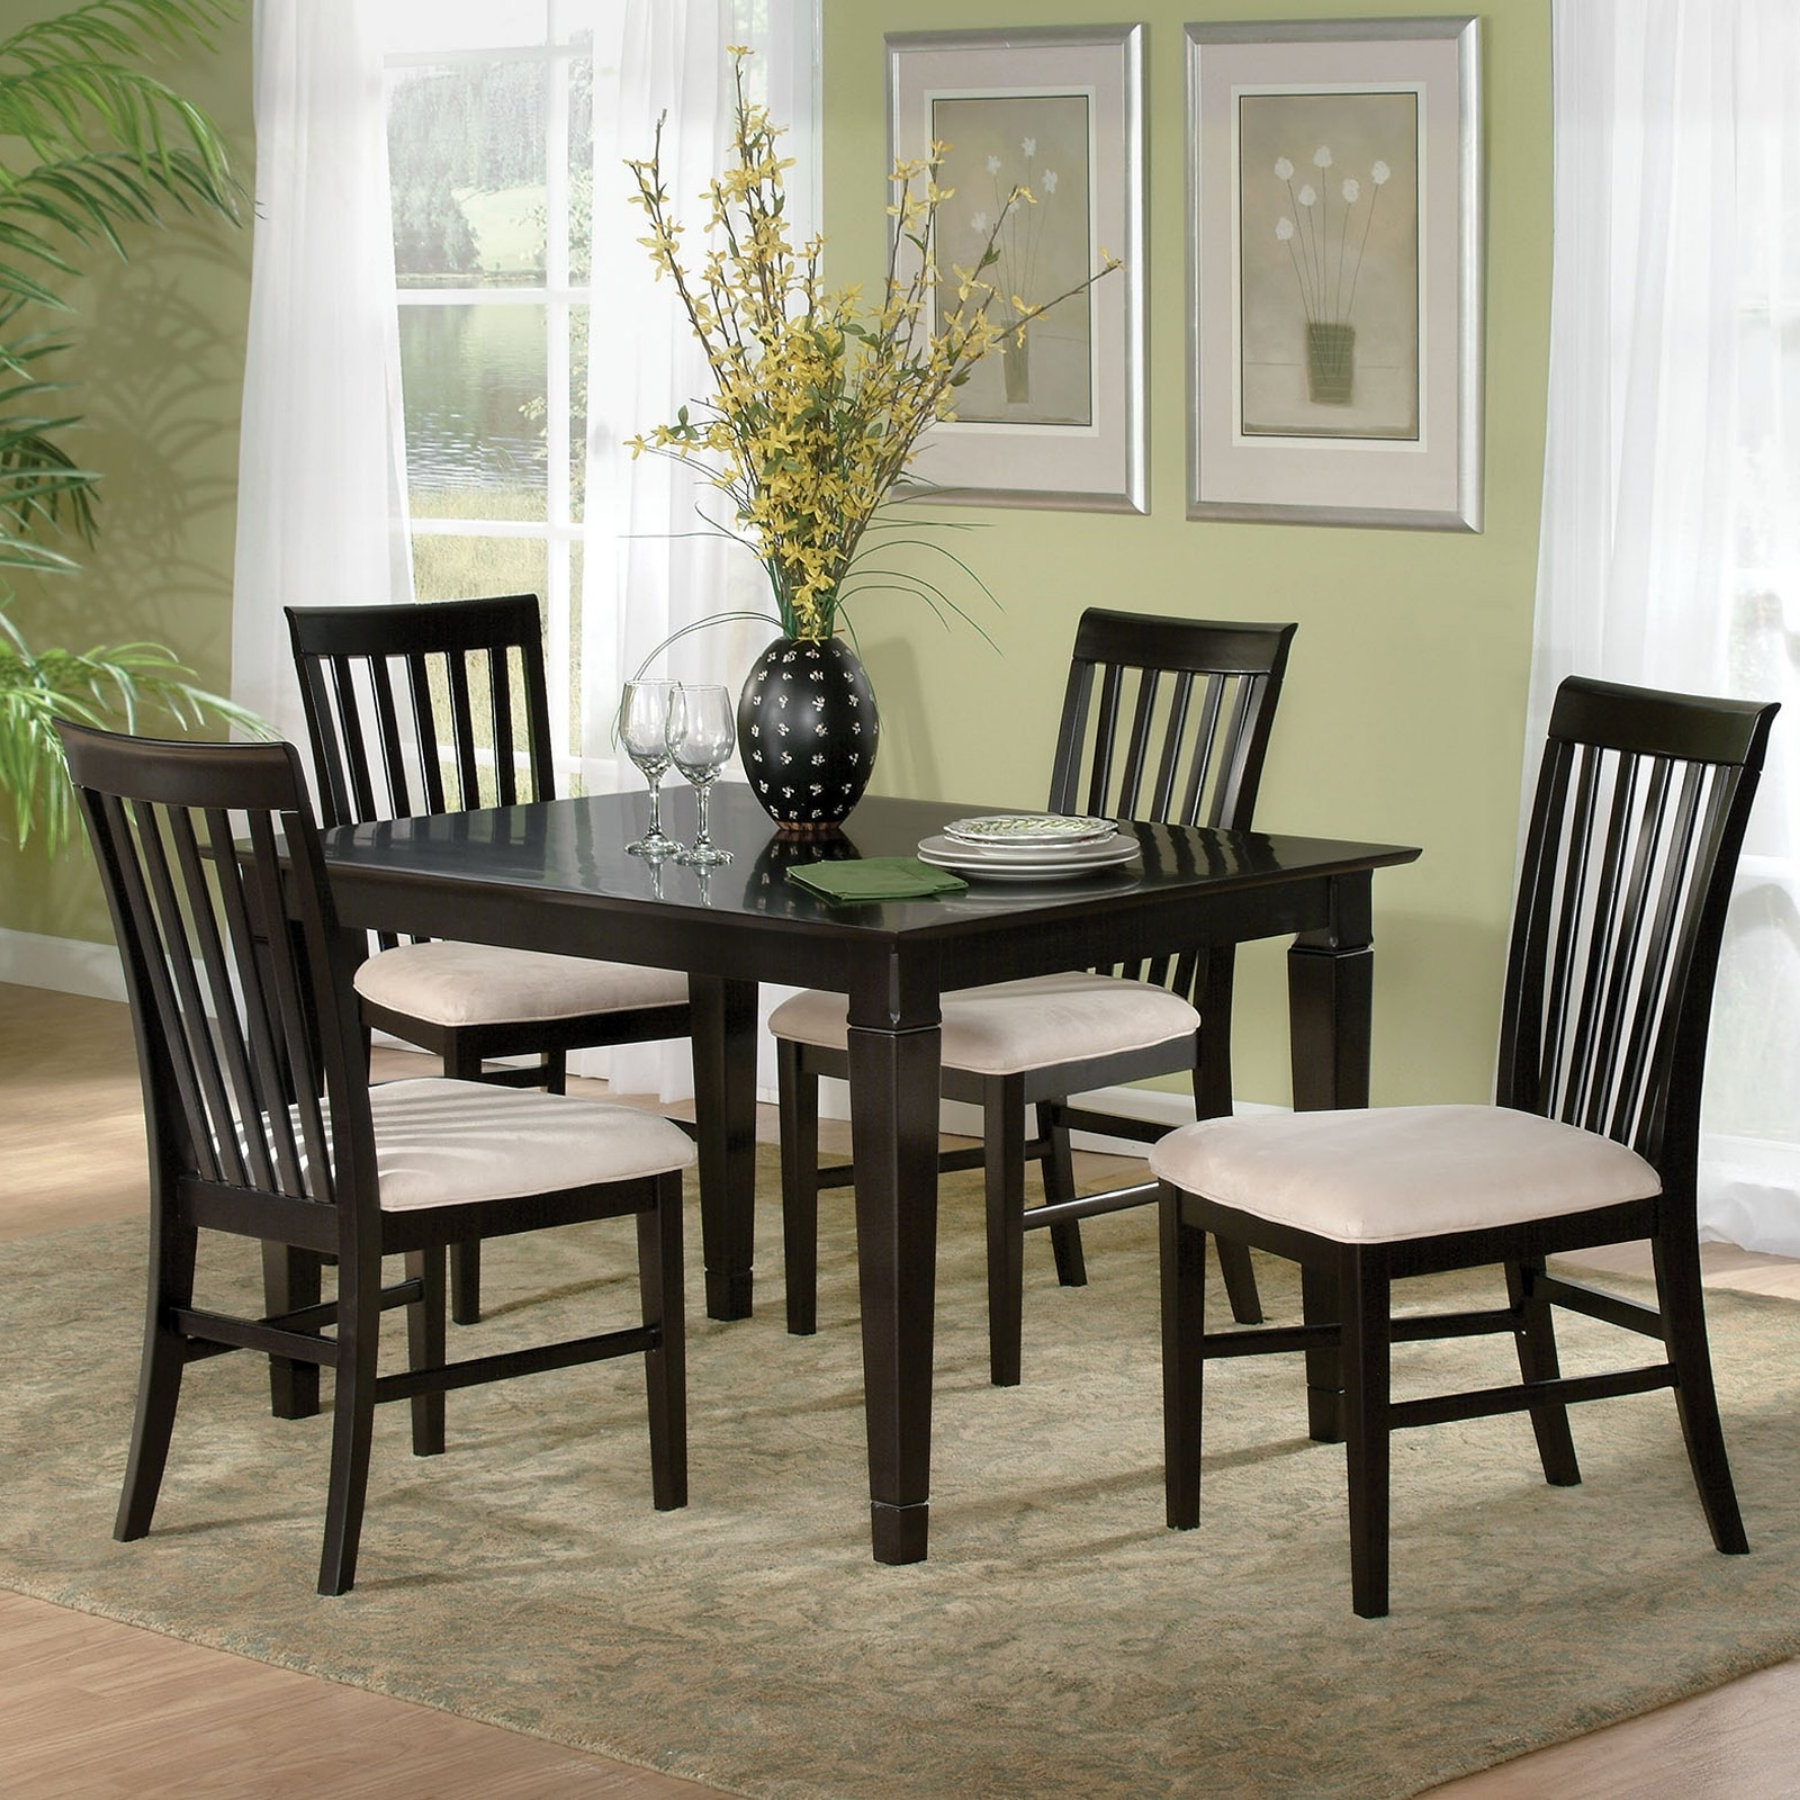 Favorite Atlantic Furniture Montego Bay 5 Piece Espresso Dining Table Set For Laurent 5 Piece Round Dining Sets With Wood Chairs (View 10 of 25)